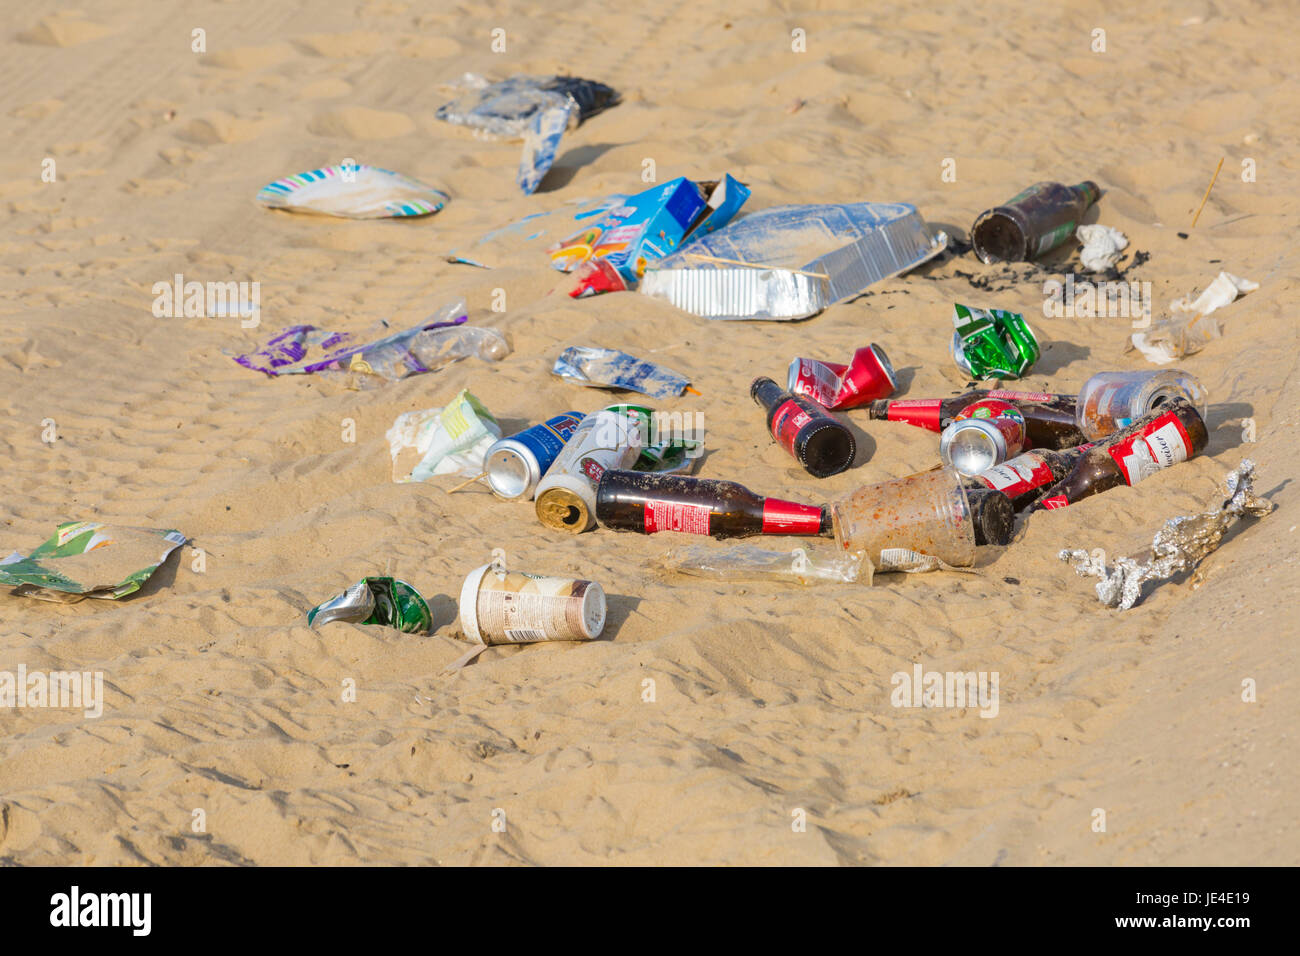 Litter rubbish left behind on the beach at Bournemouth beach, Bournemouth, Dorset UK  in June - Stock Image